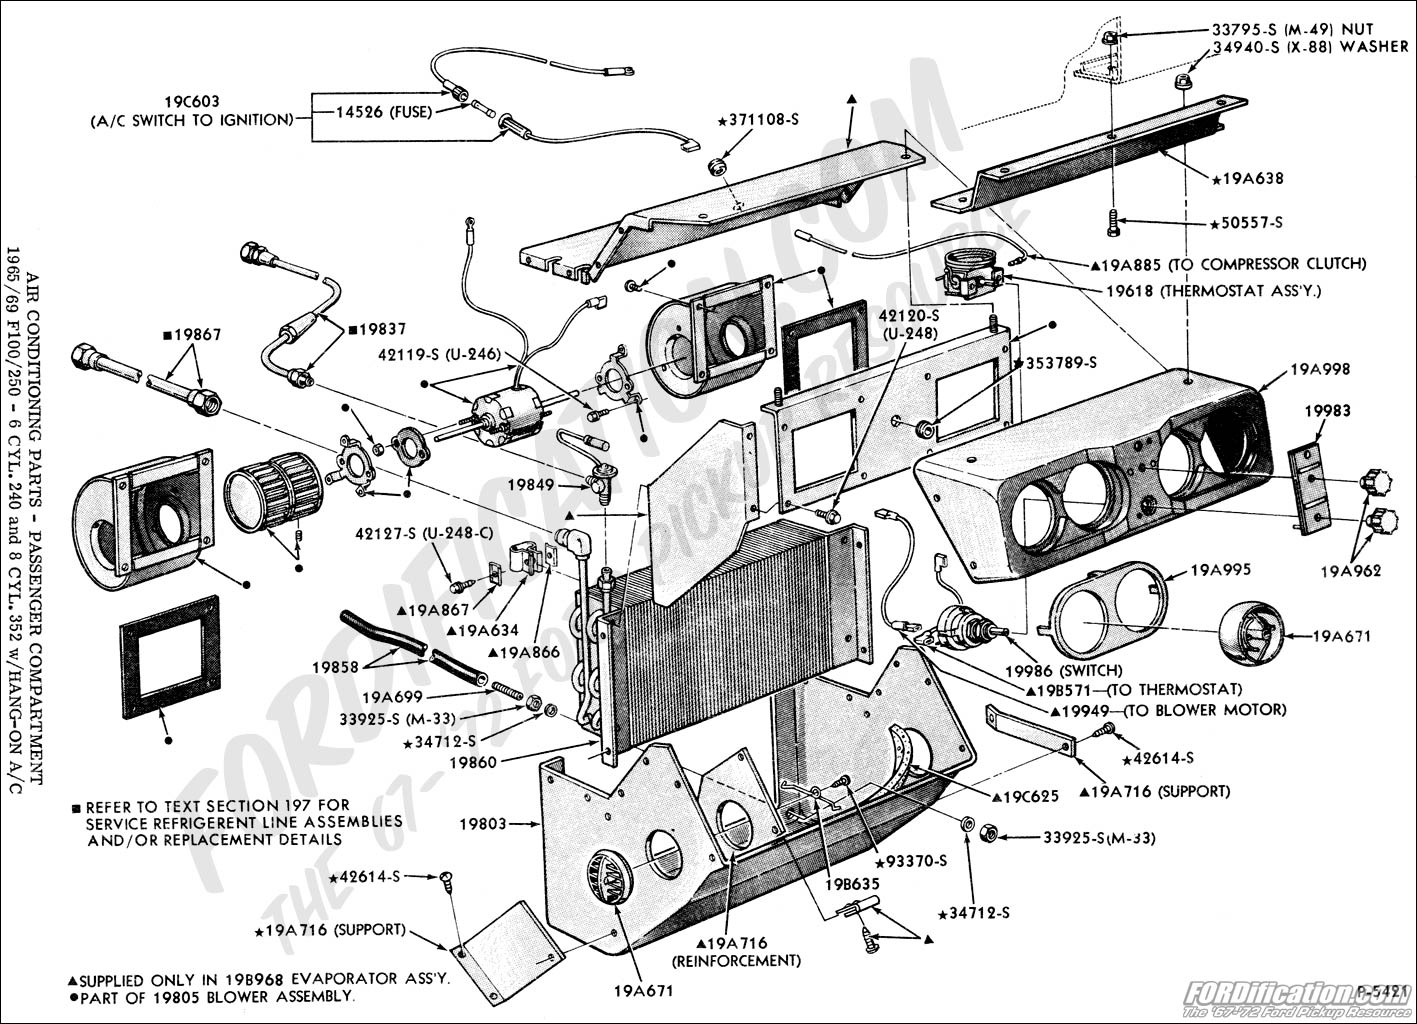 1963 Ford Galaxie 500 Xl Wiring Diagram Com